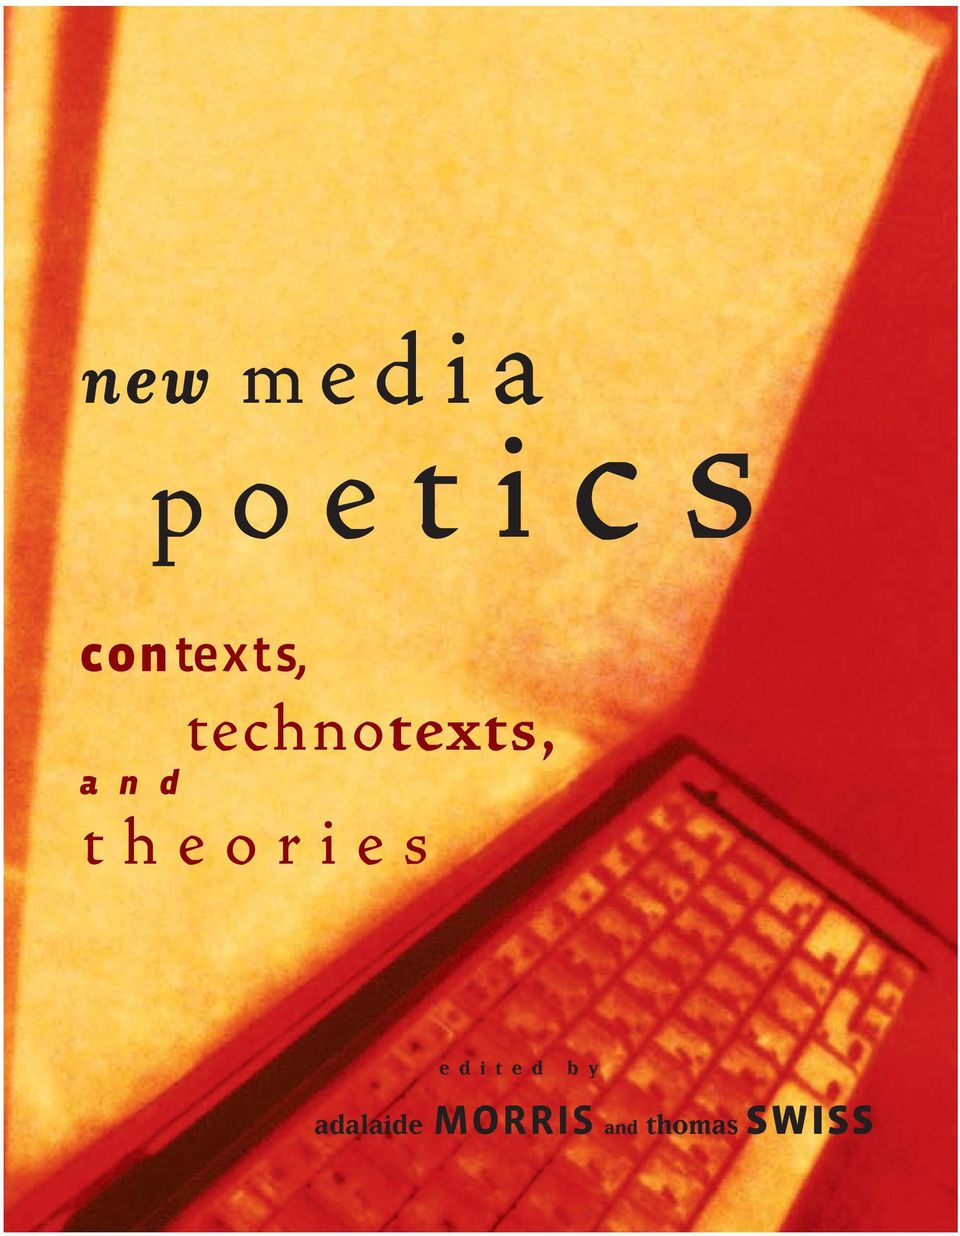 technotexts, theories